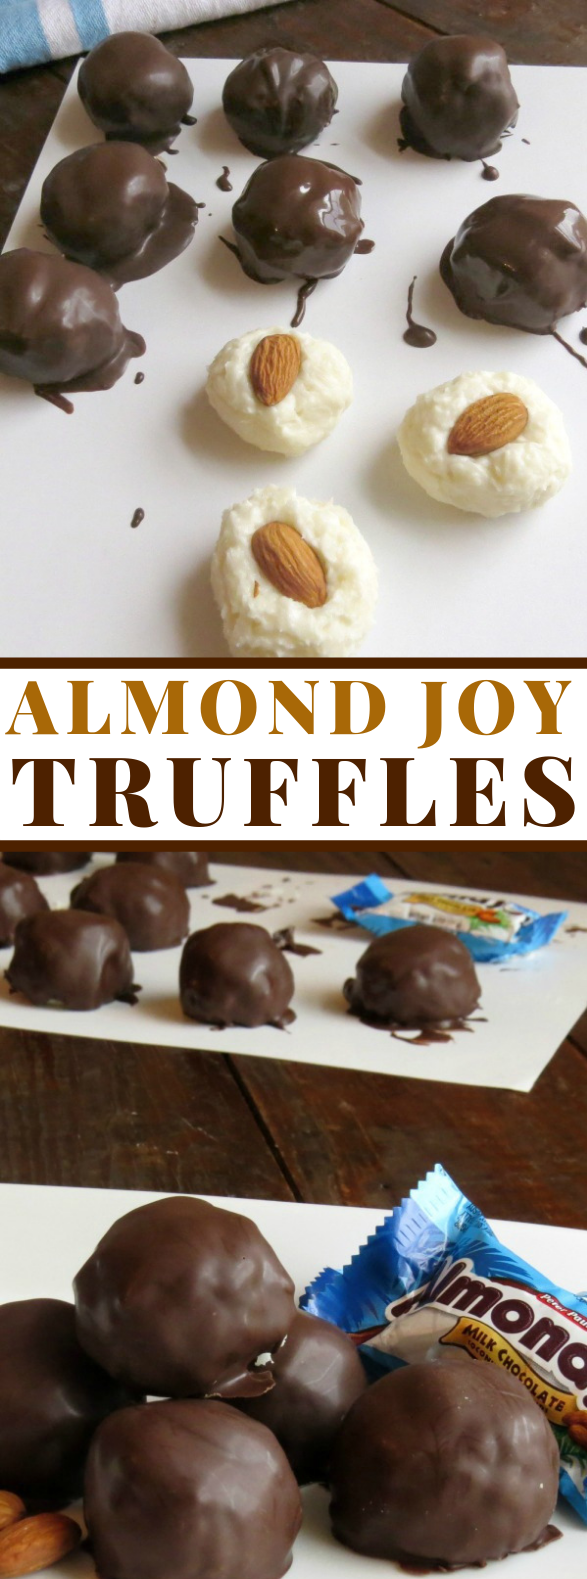 ALMOND JOY TRUFFLES RECIPE #chocolate #candy